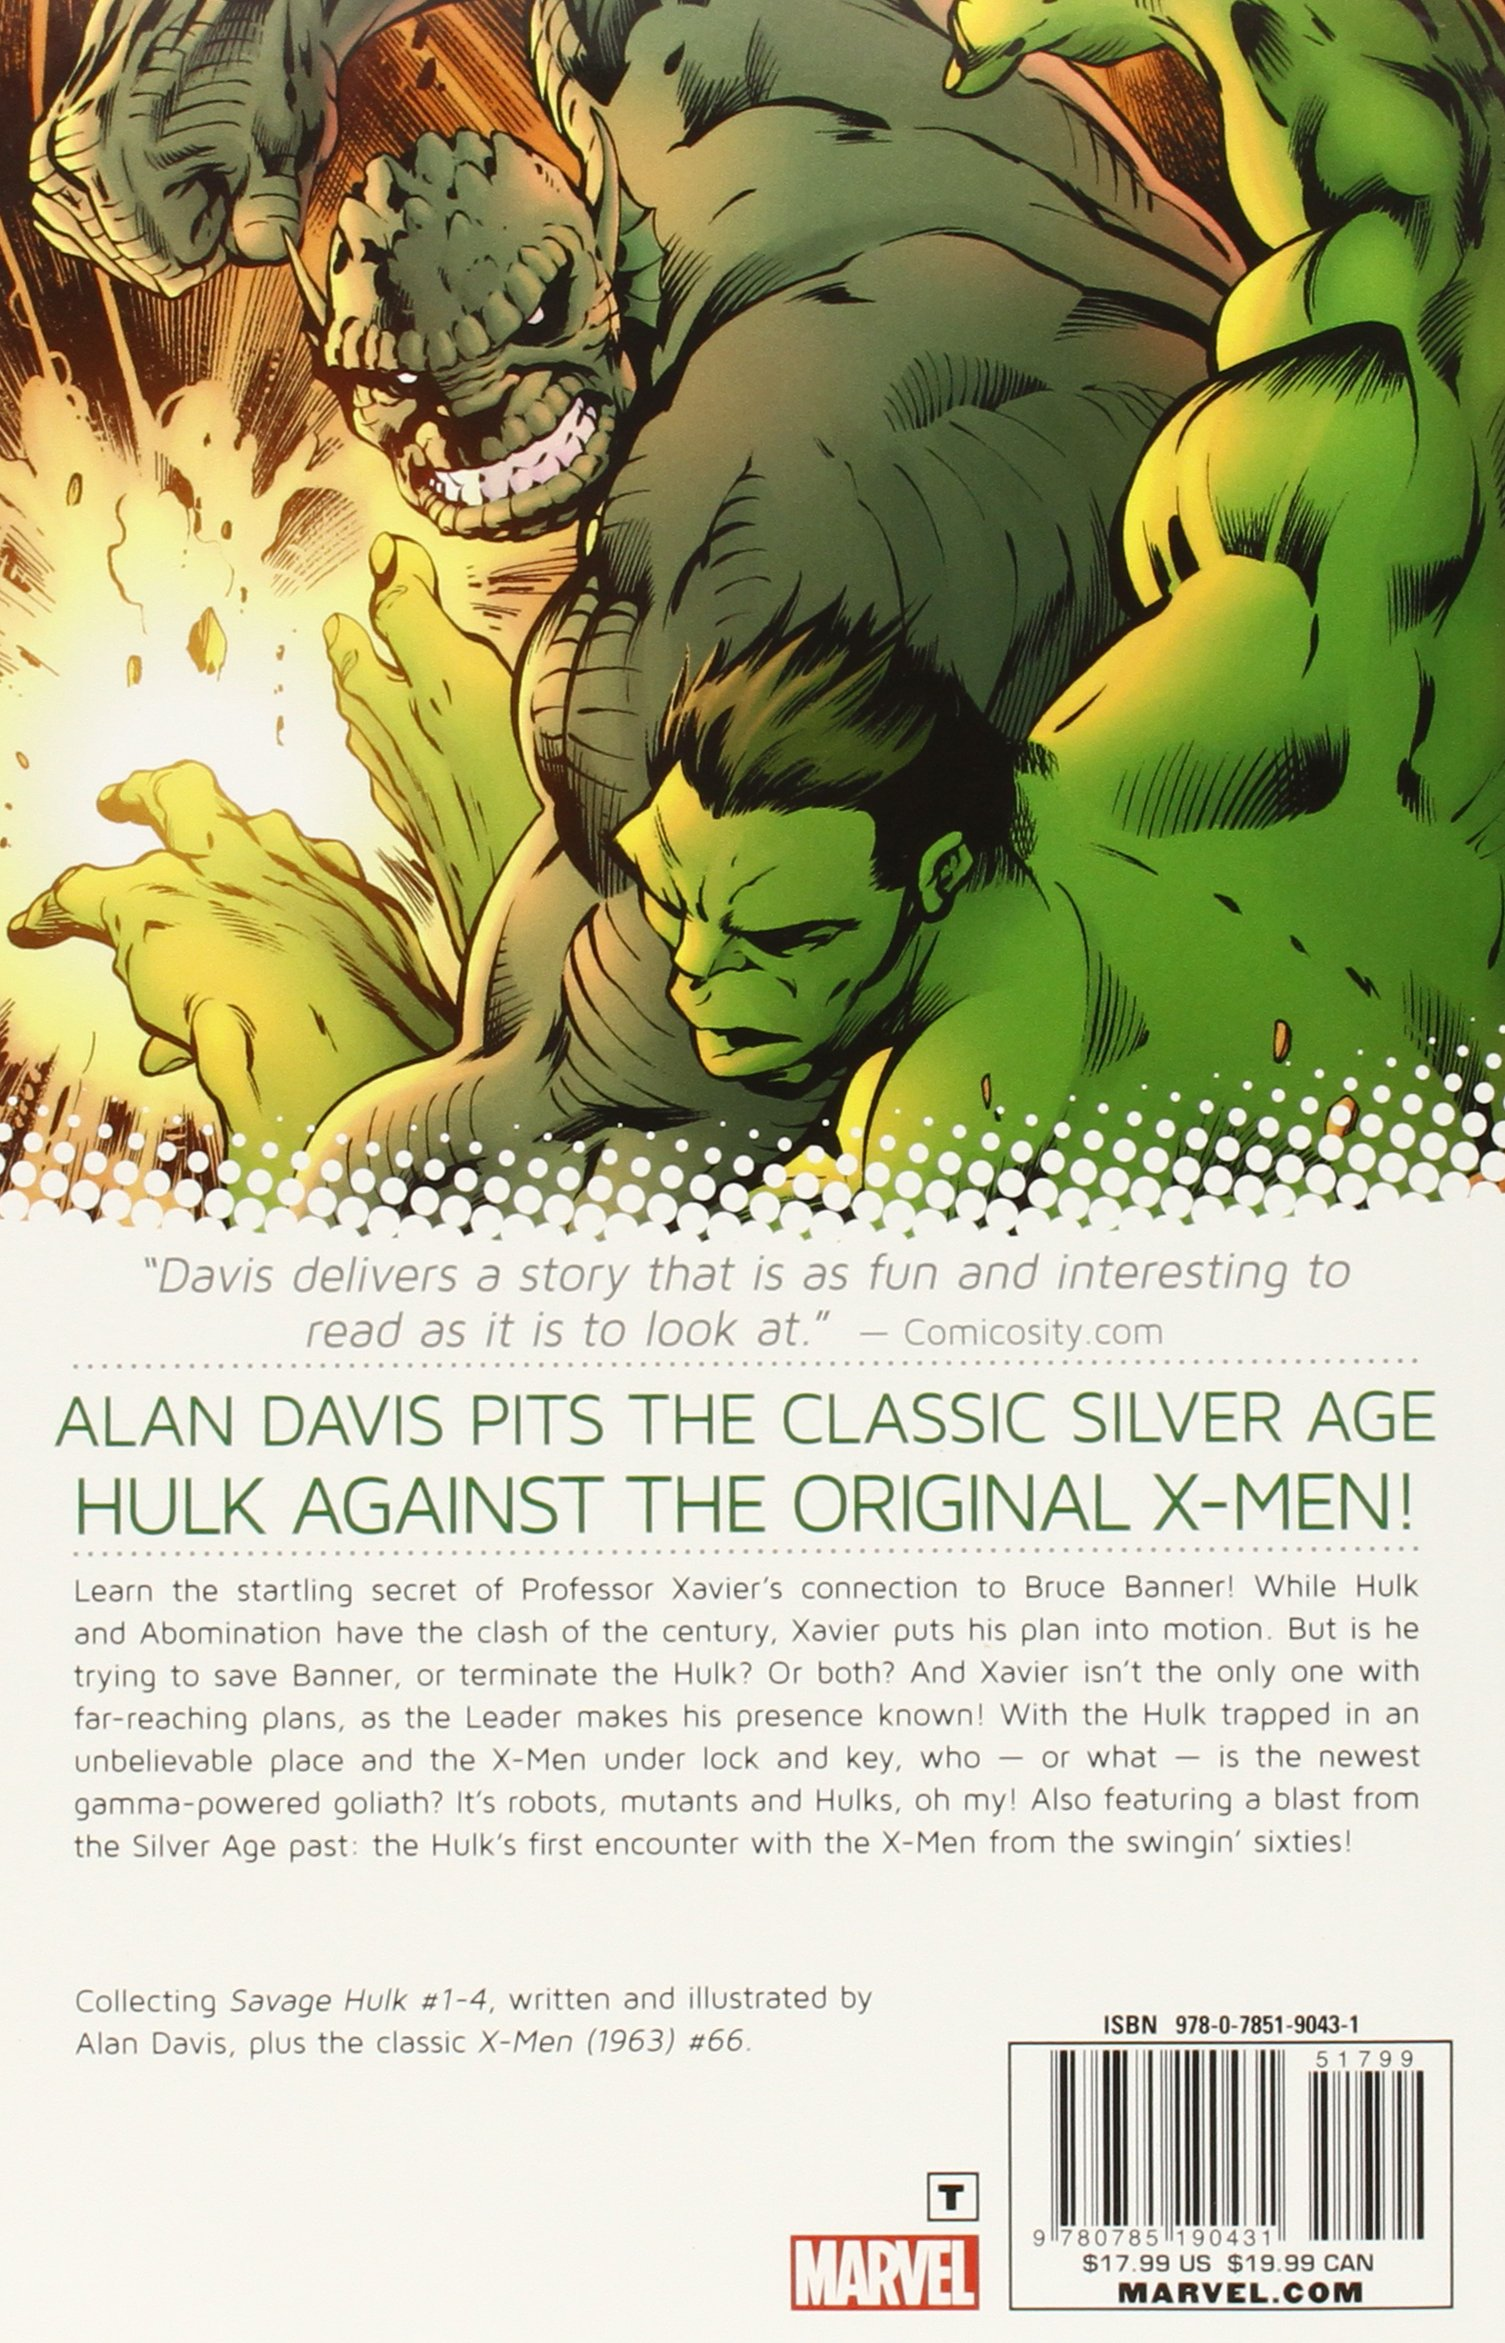 Amazon savage hulk volume 1 the man within 9780785190431 amazon savage hulk volume 1 the man within 9780785190431 alan davis books fandeluxe Image collections